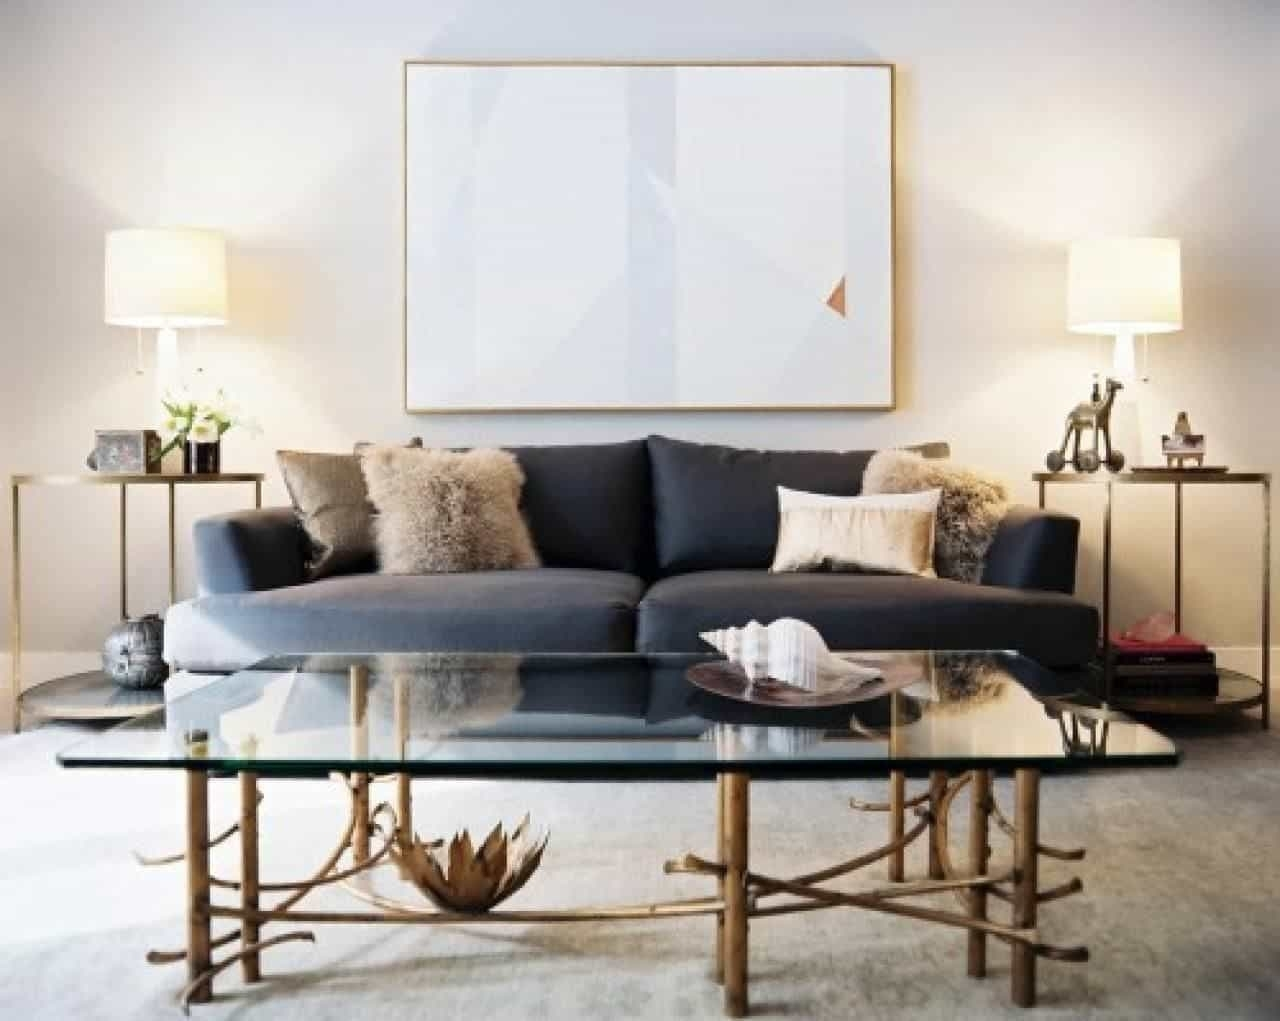 Inspiration about Modern Living Room With Grey Sofa And Side Tables With Table Lamps With Living Room Coffee Table Lamps (#1 of 15)